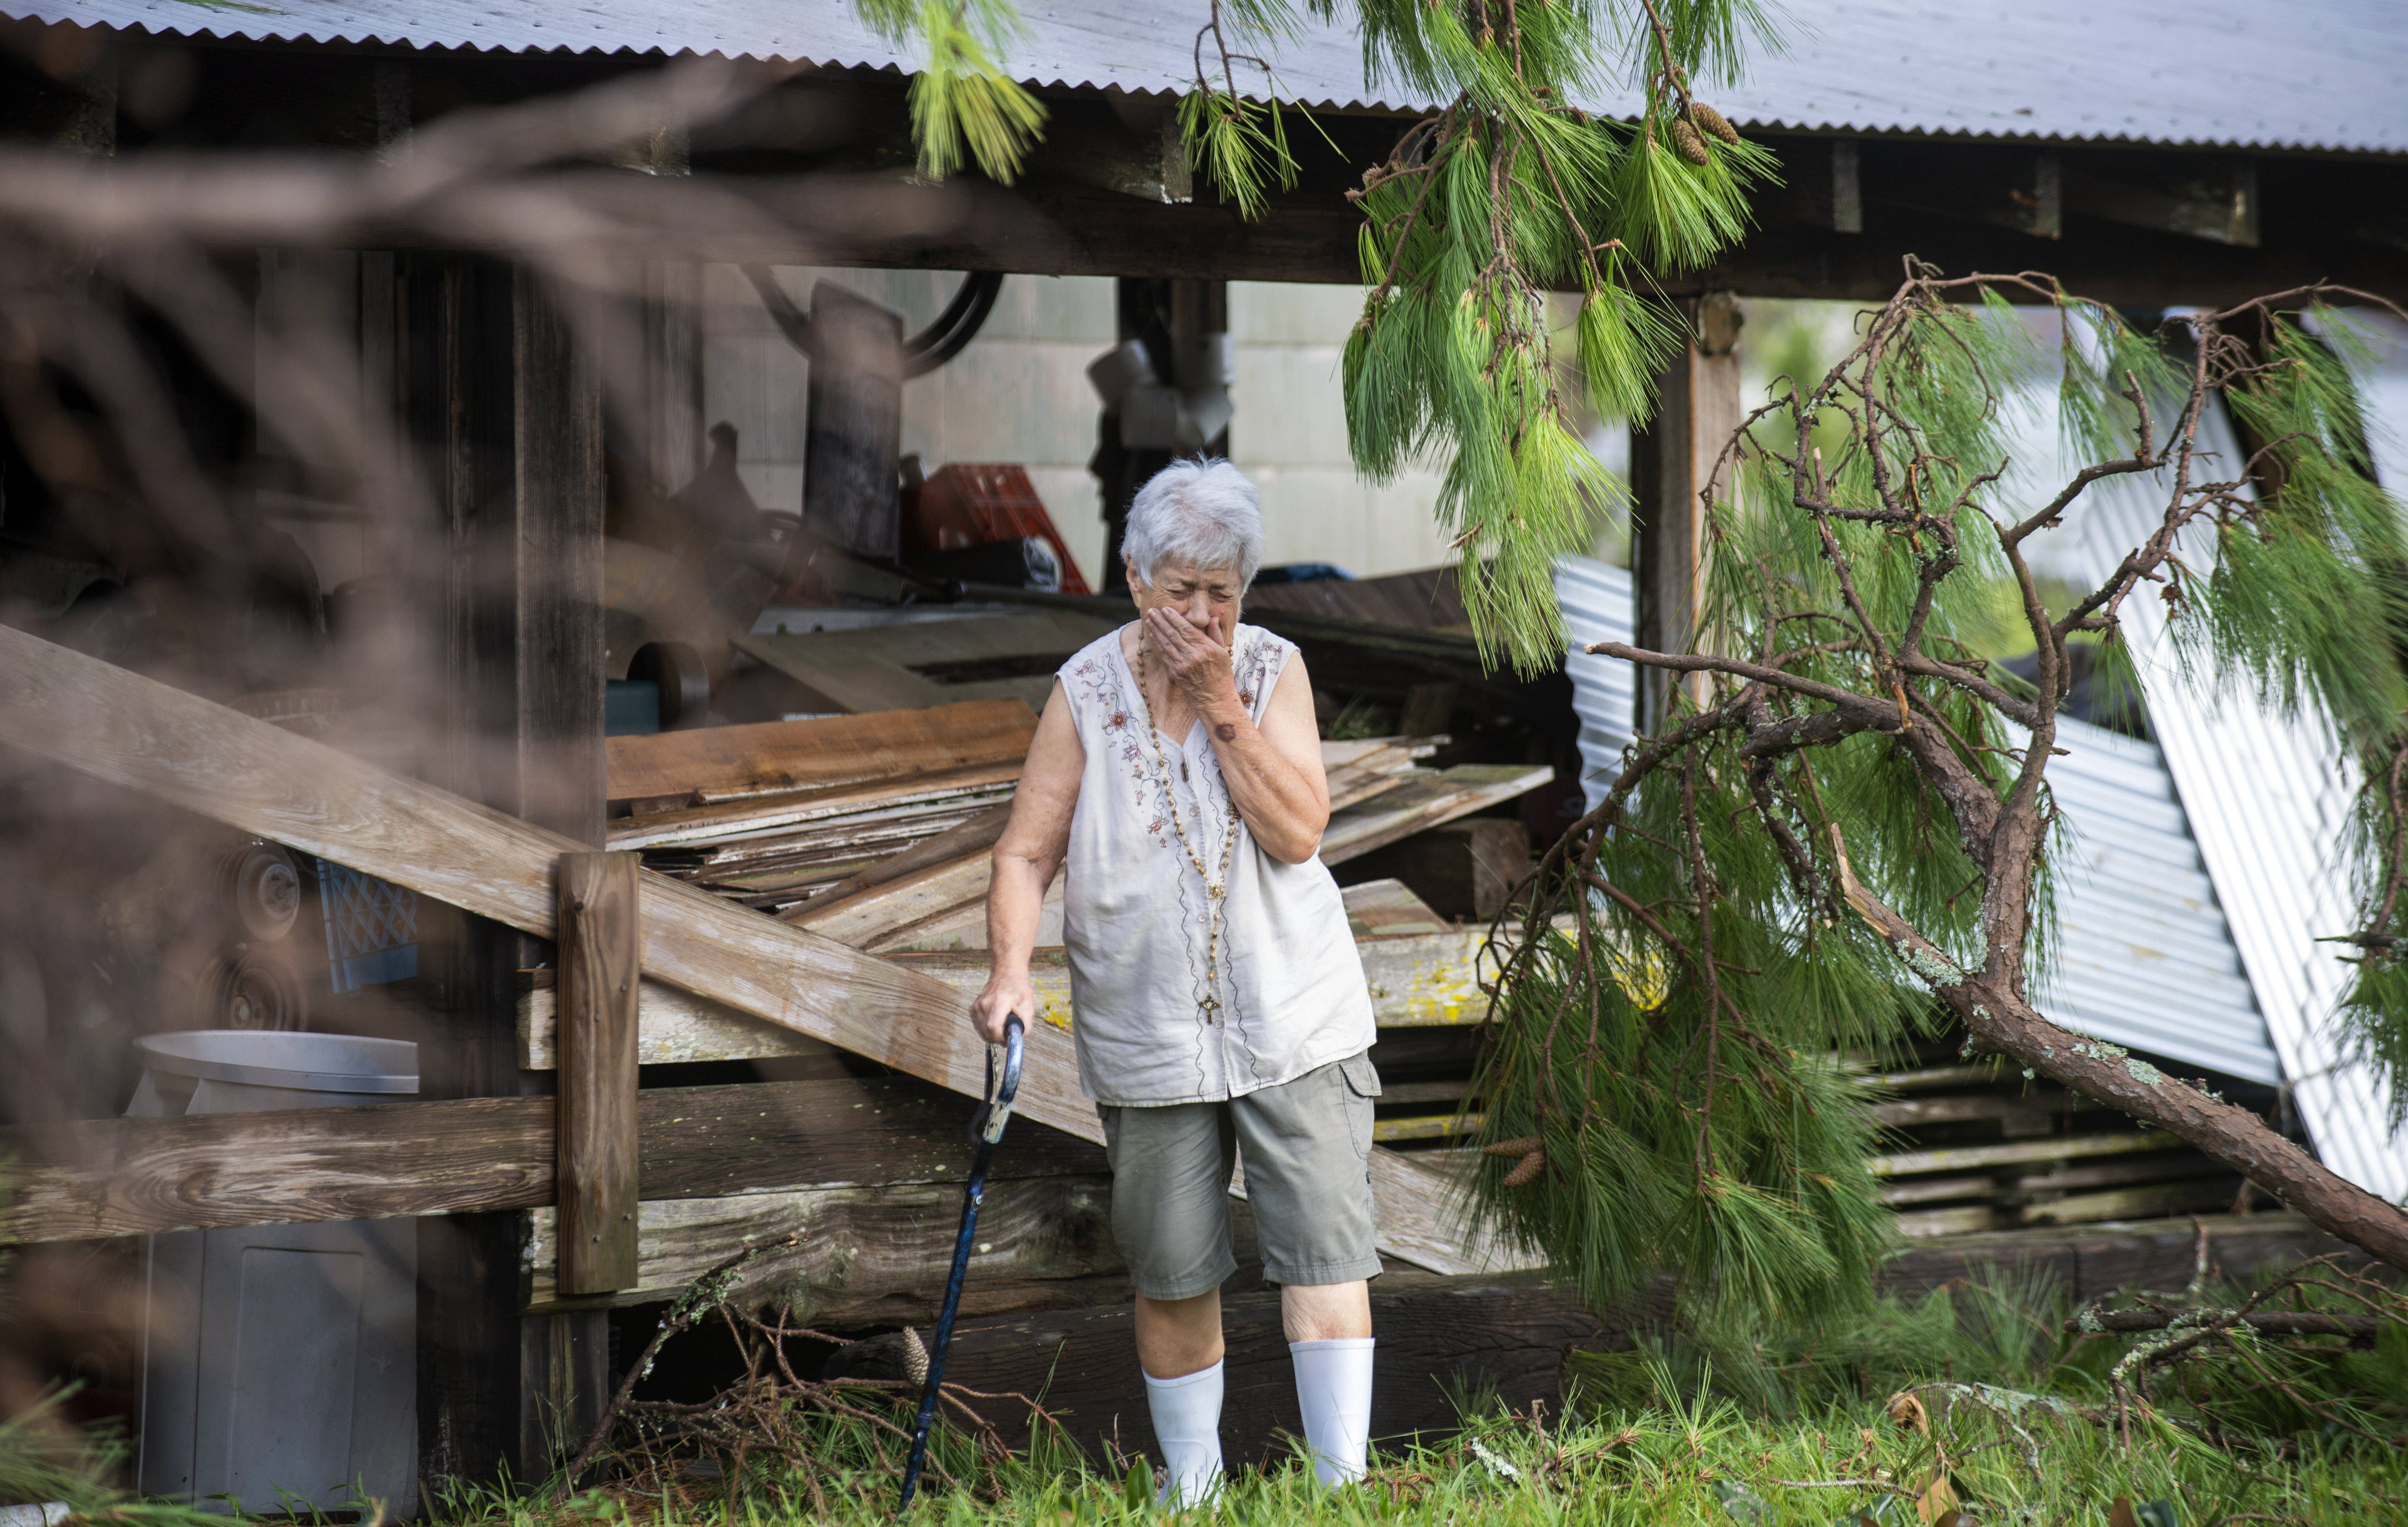 Sharon Orlando tries to hold back tears while surveying the damage from Hurricane Ida at her home in Destrehan, La.,